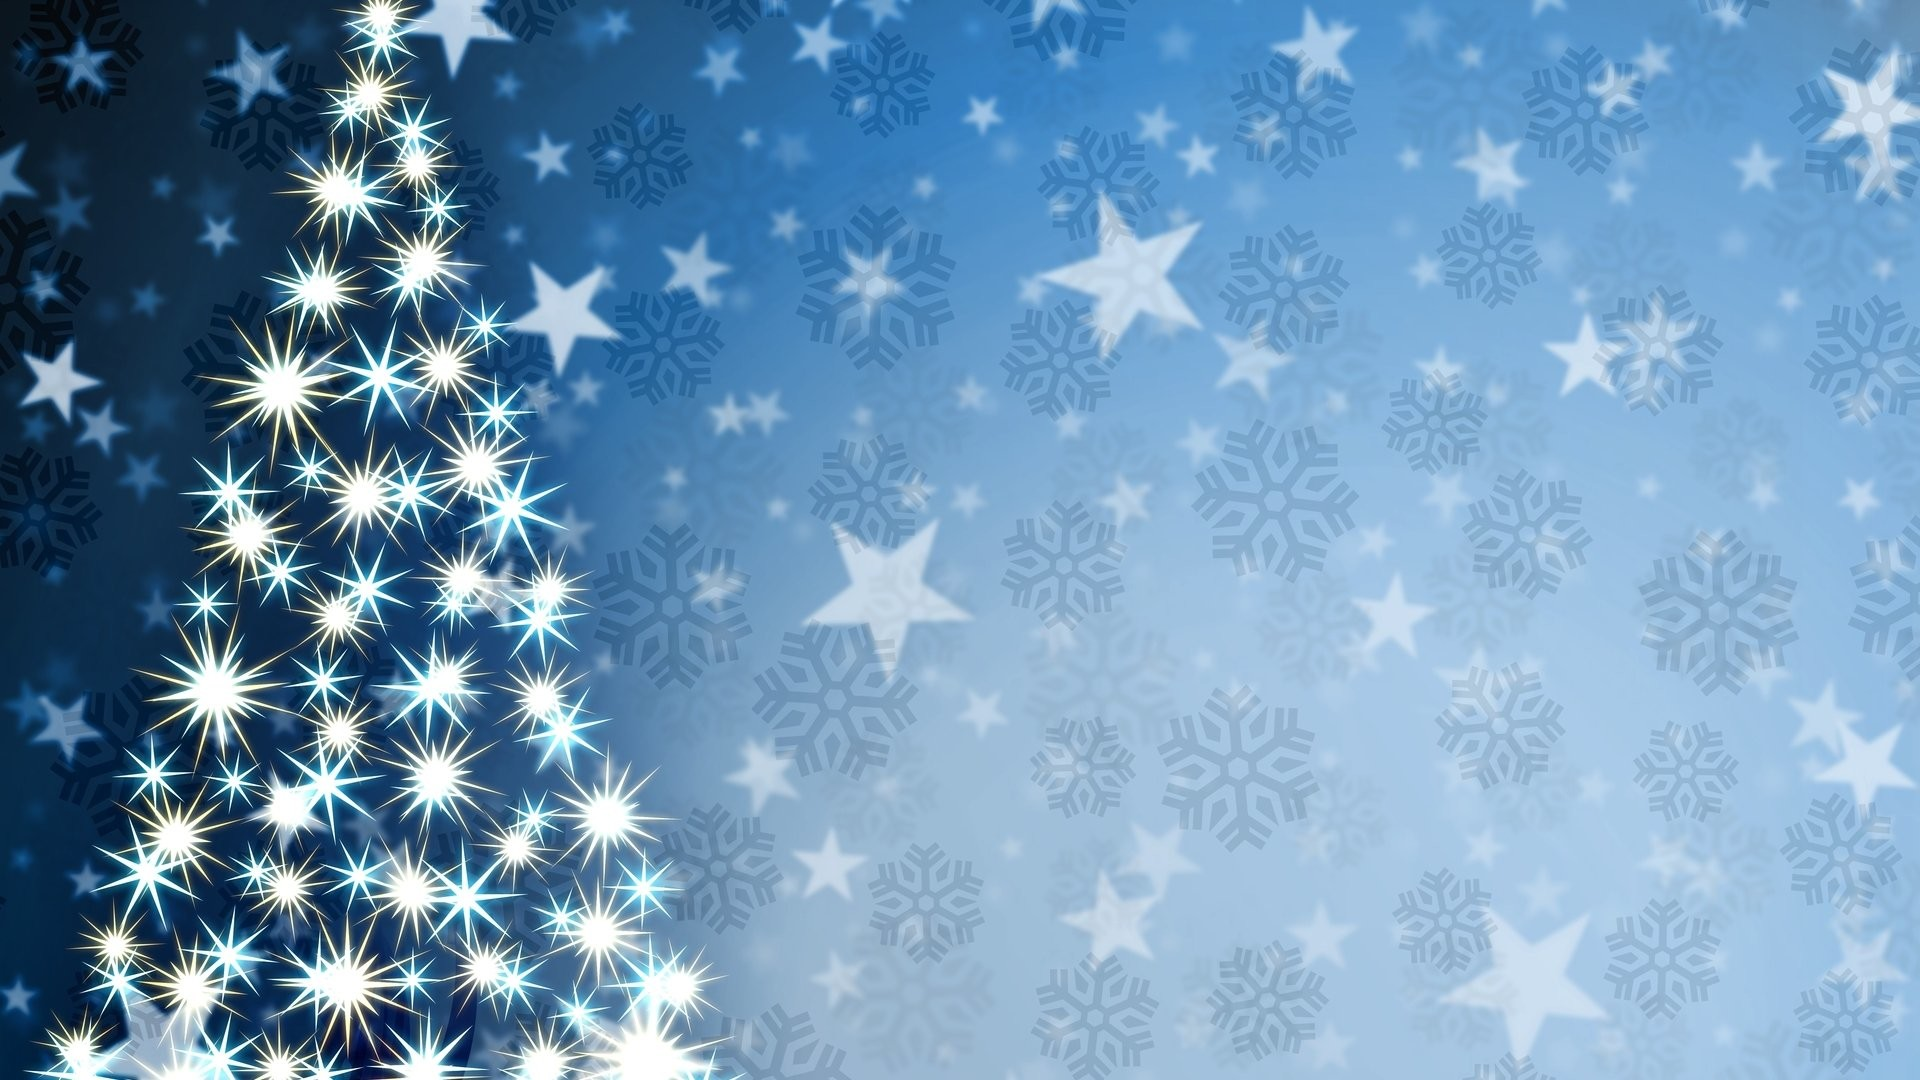 1920x1080 Winter Wonderland Background 732477